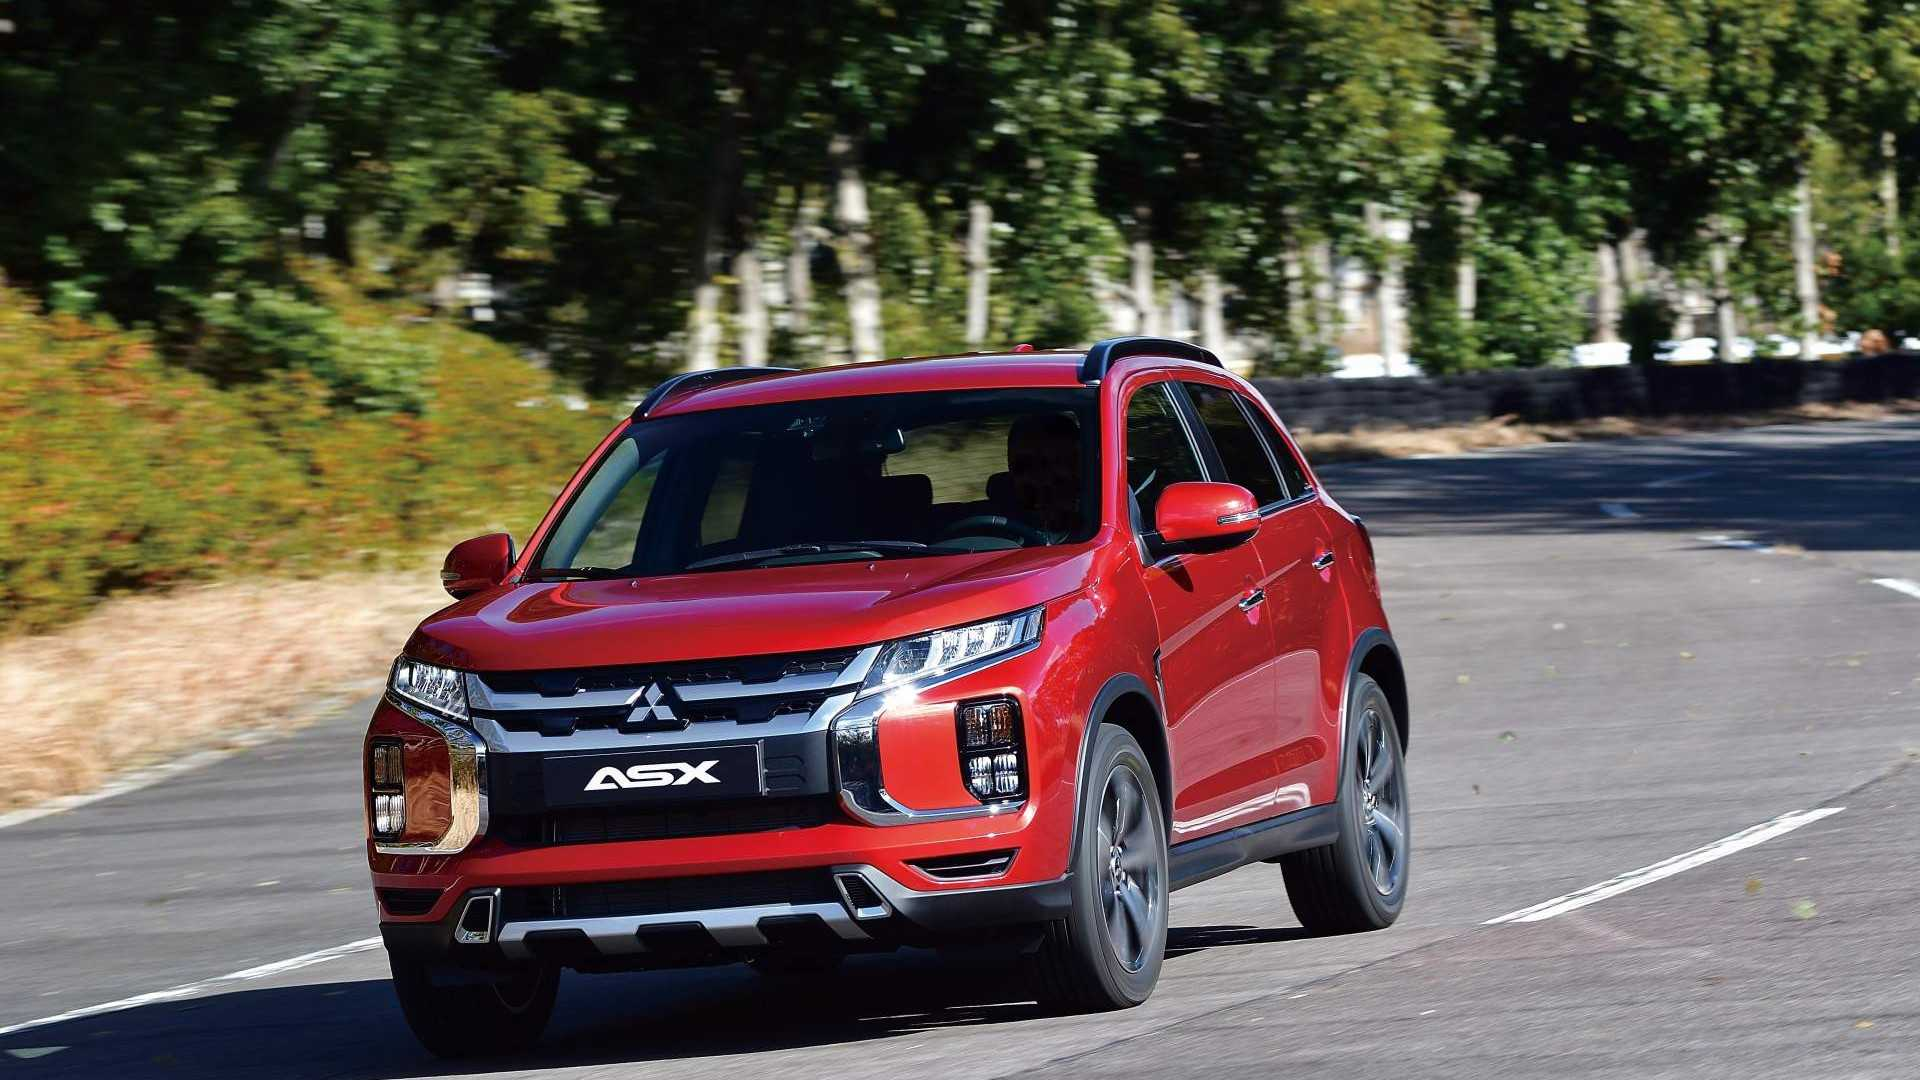 12 All New Mitsubishi Asx 2020 Dimensions Specs and Review for Mitsubishi Asx 2020 Dimensions